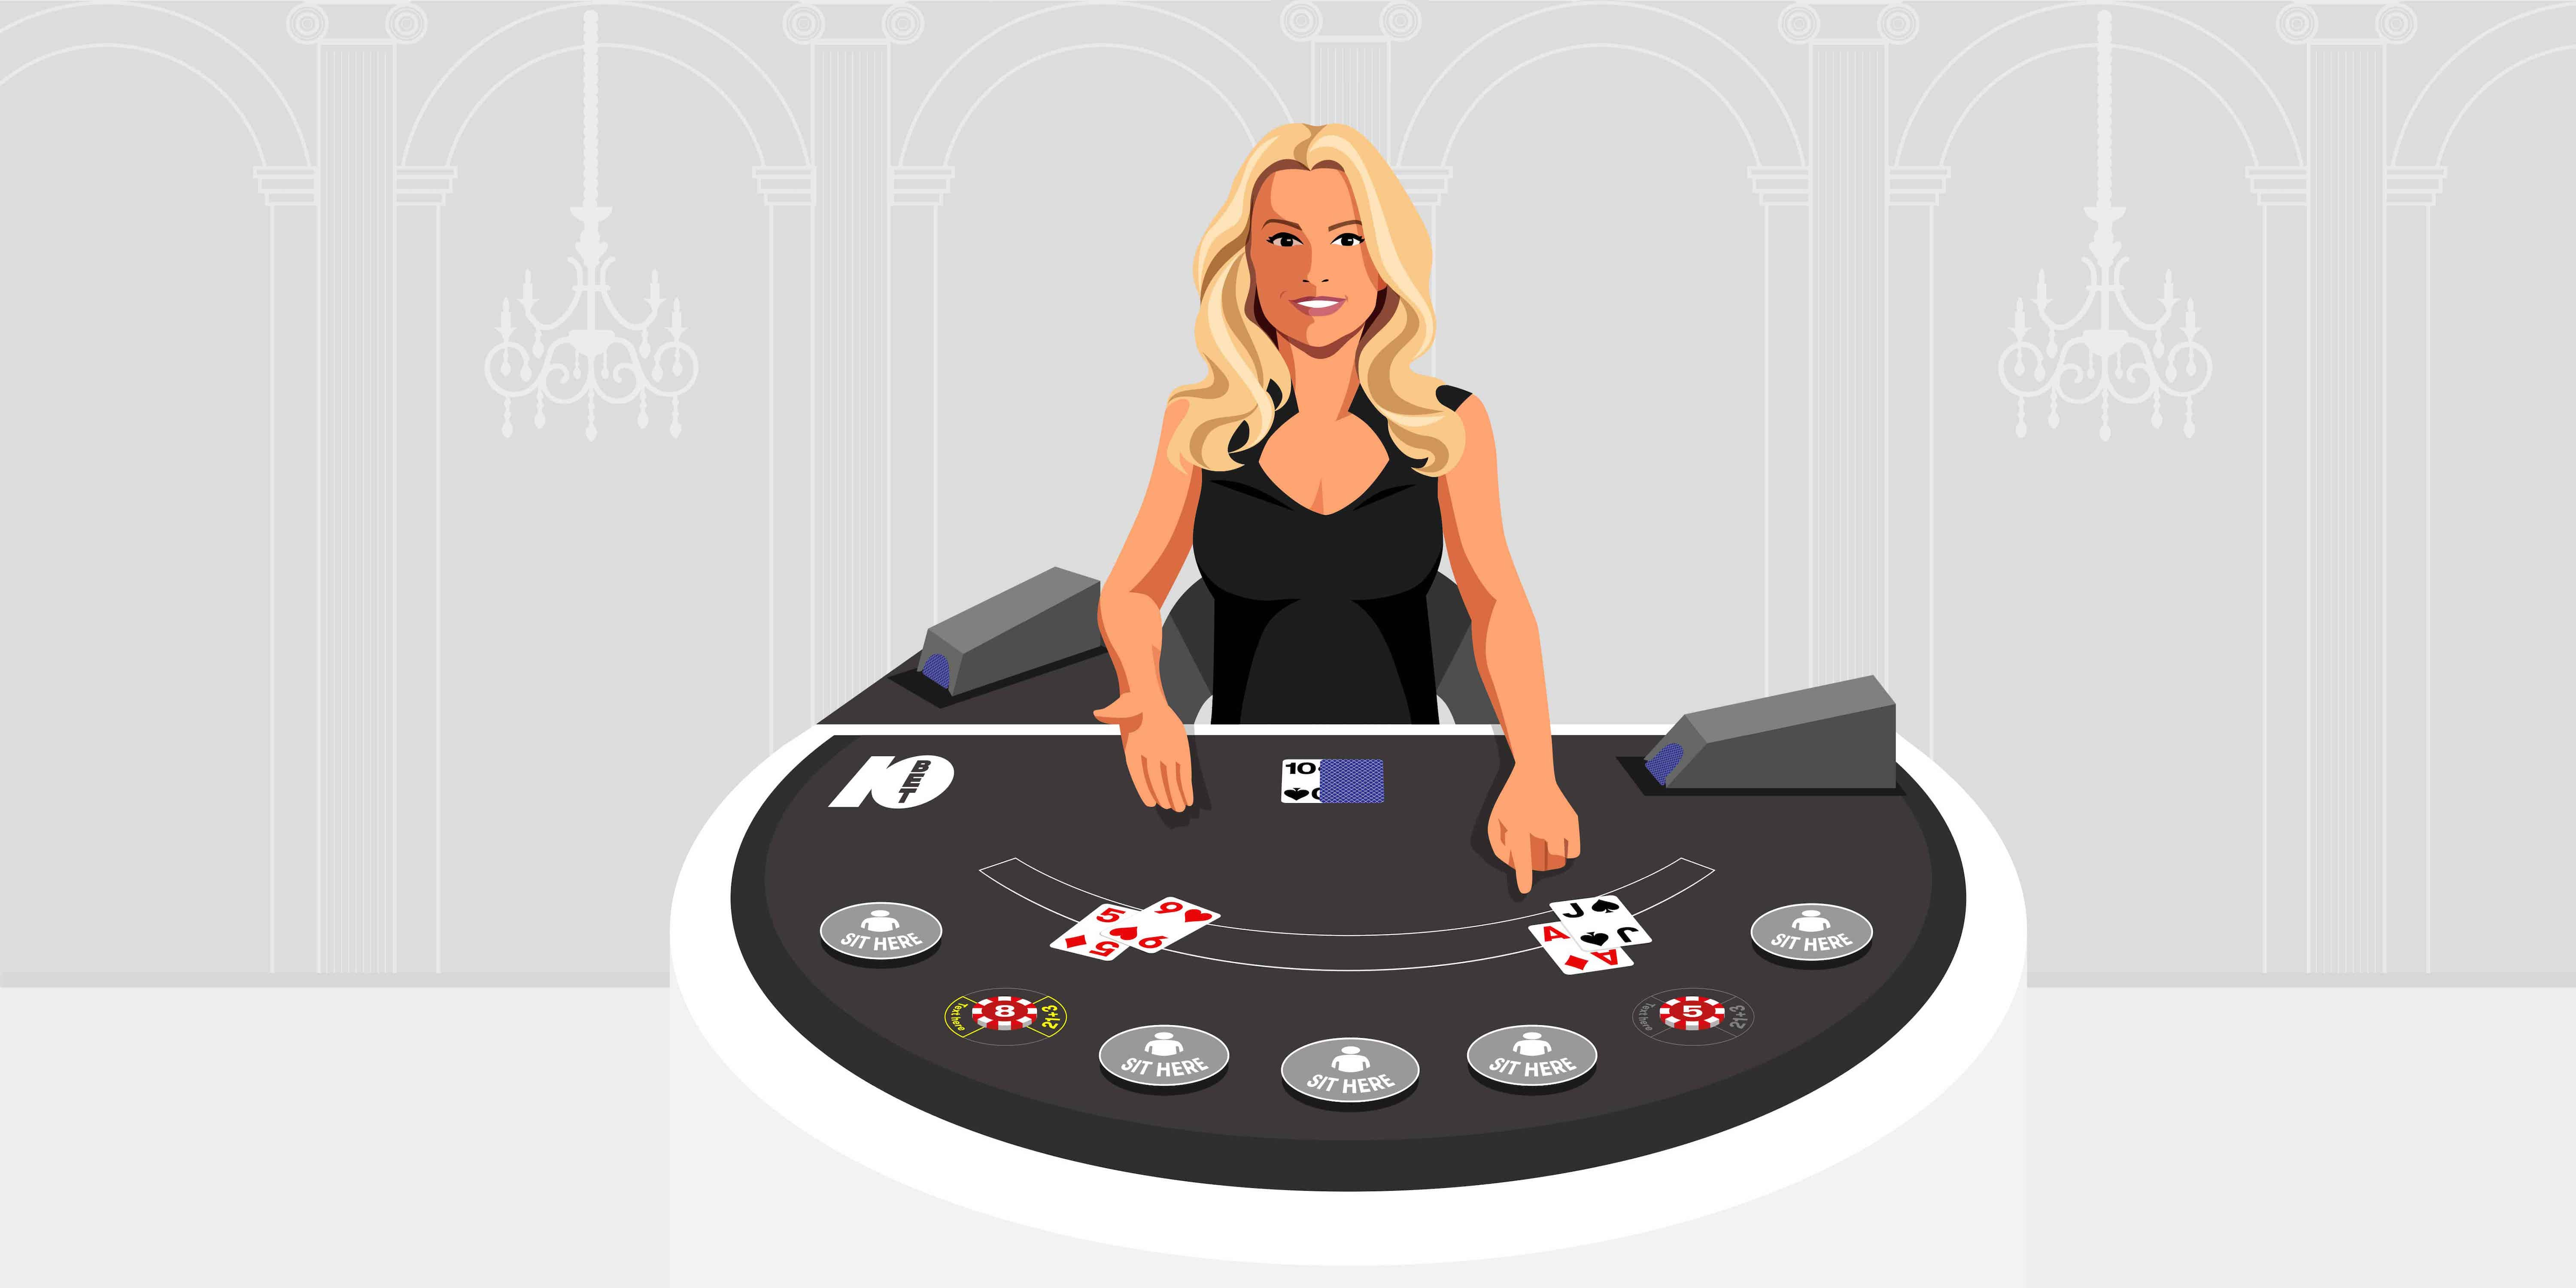 10bet's Ultimate Guide to playing Blackjack 1